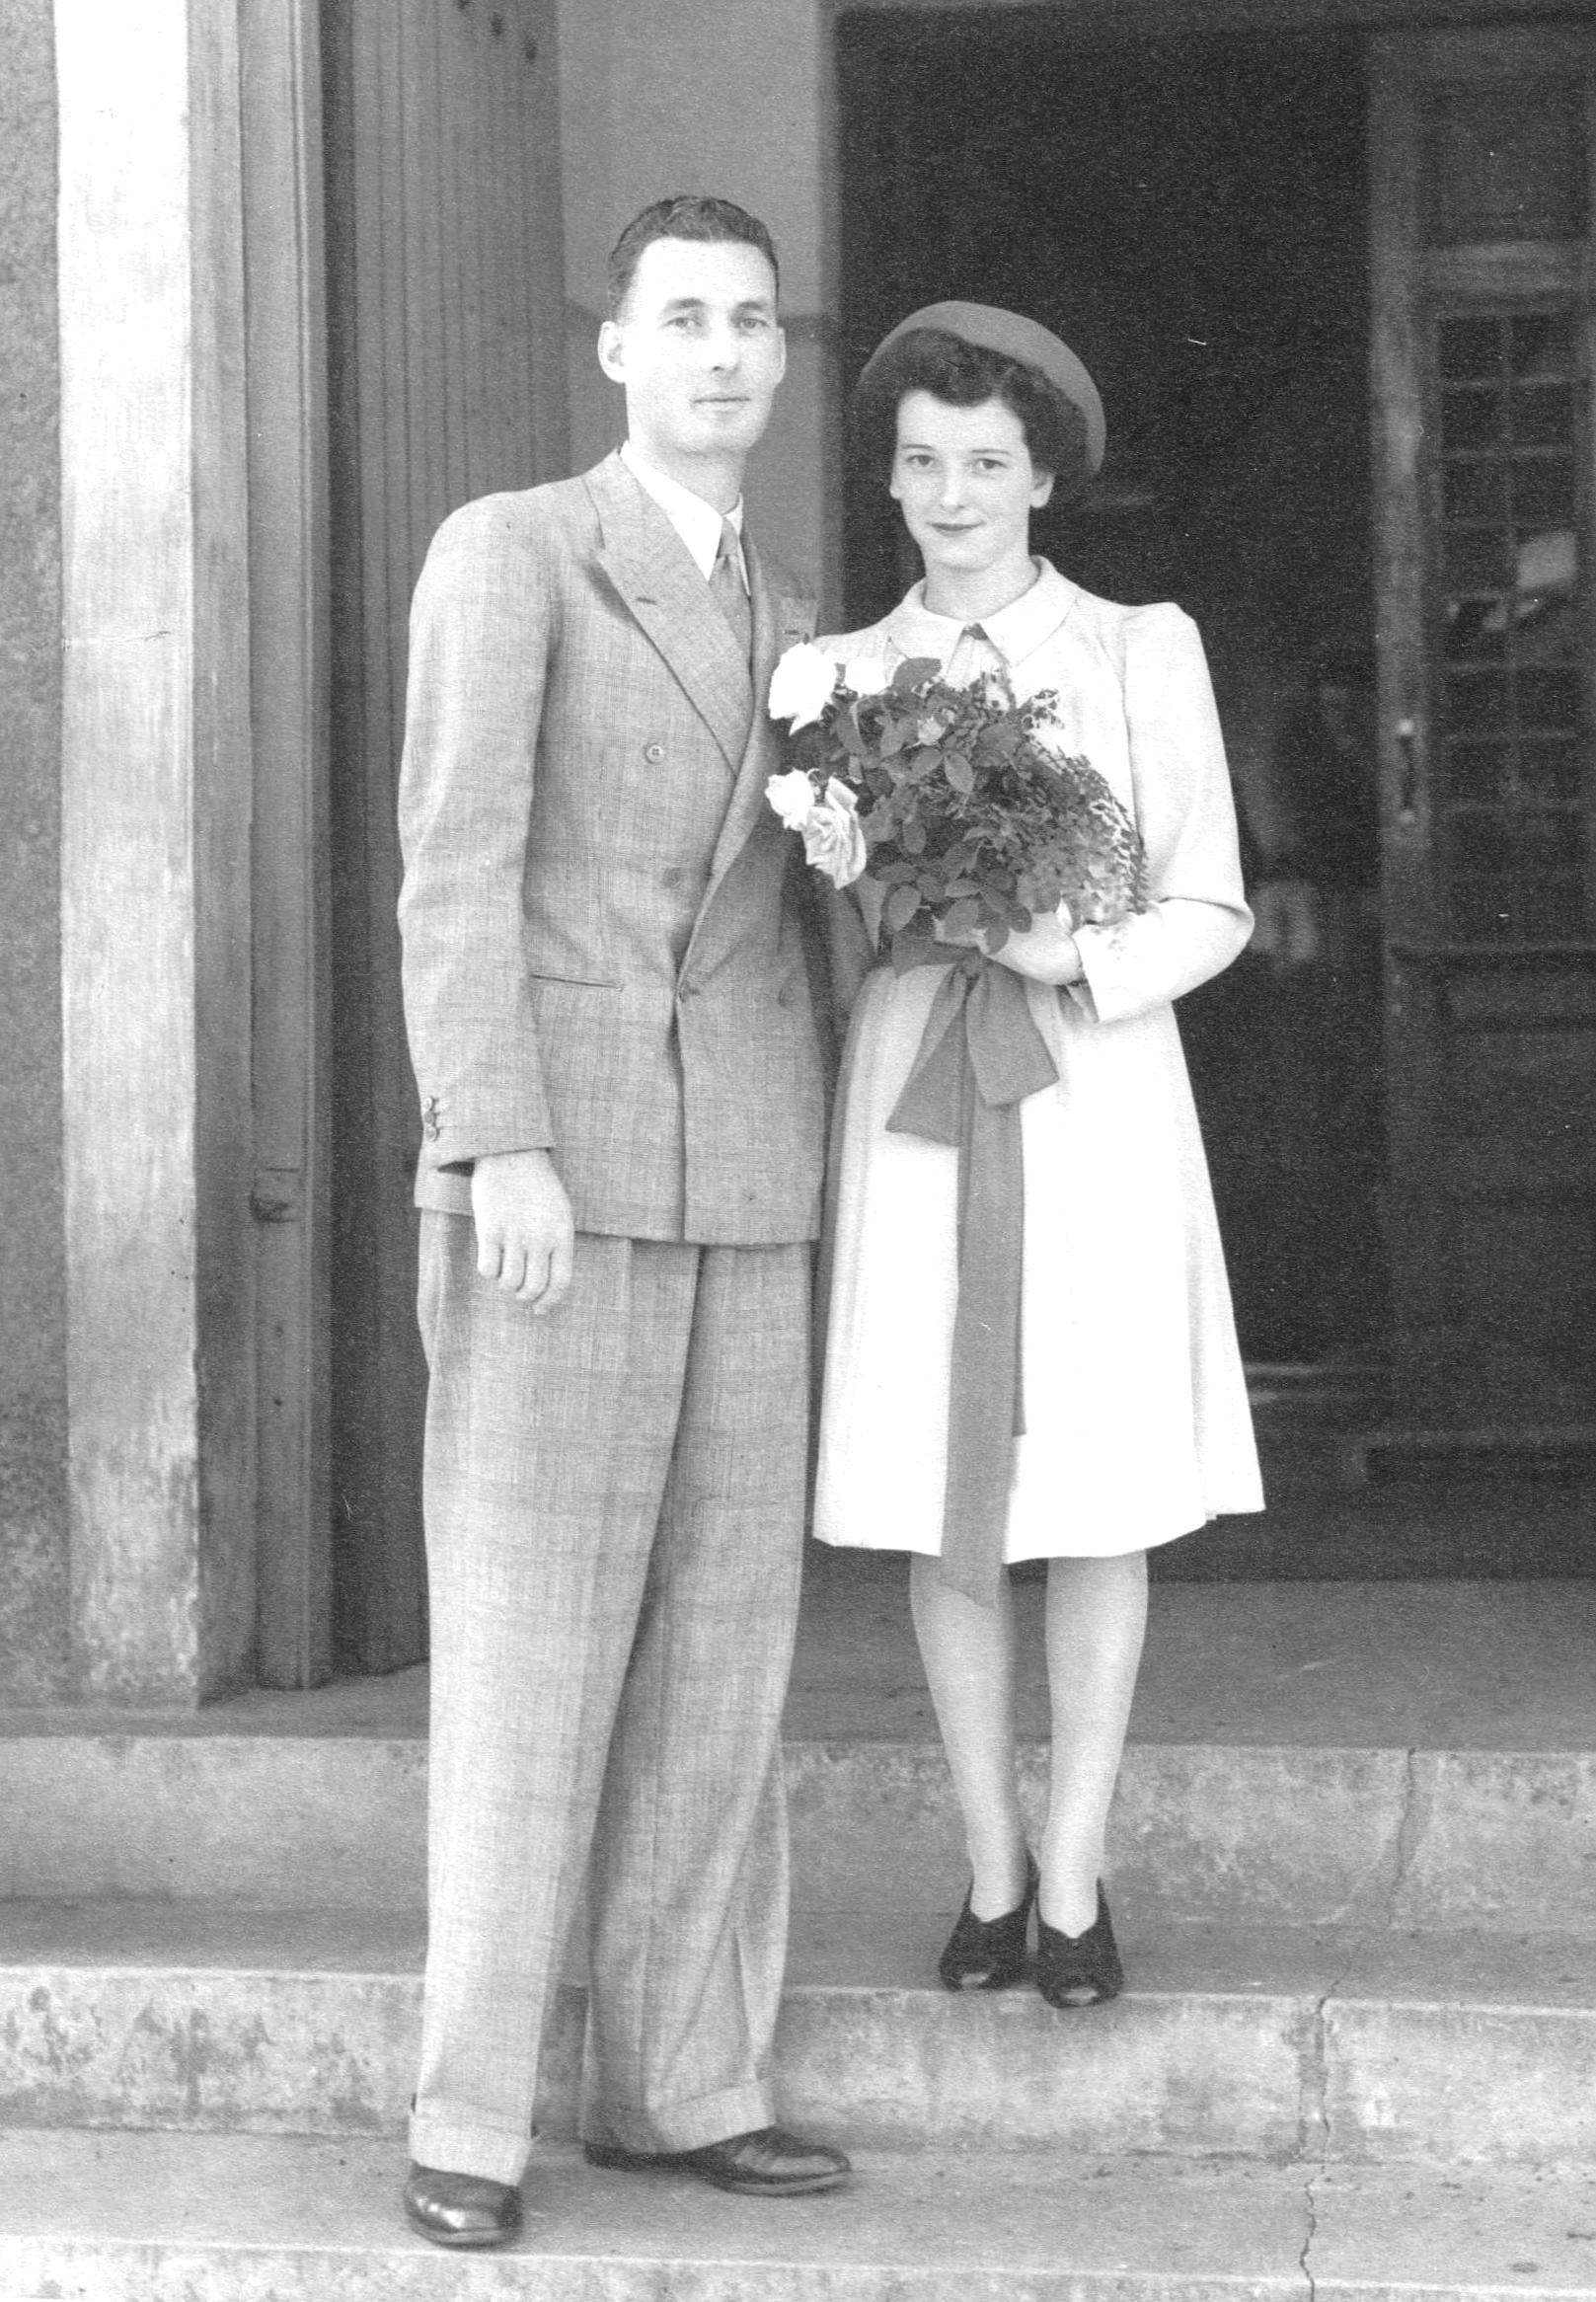 Geoffrey and frances April 1943